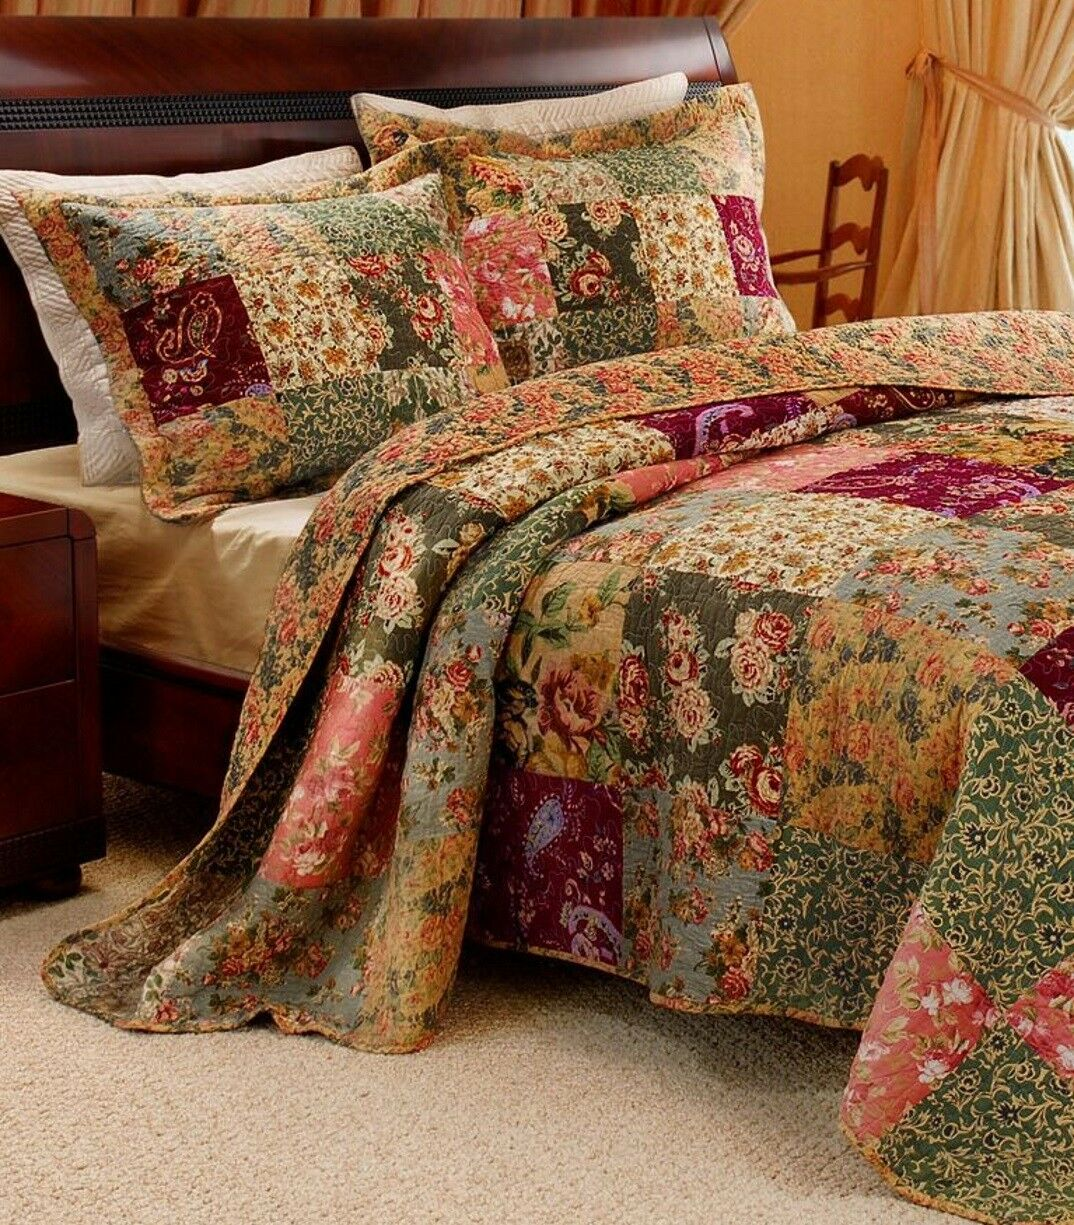 VINTAGE PATCHWORK 3pc KING BEDSPREAD QUILT SET   XXL RED GREEN blueeeE PINK pinkS